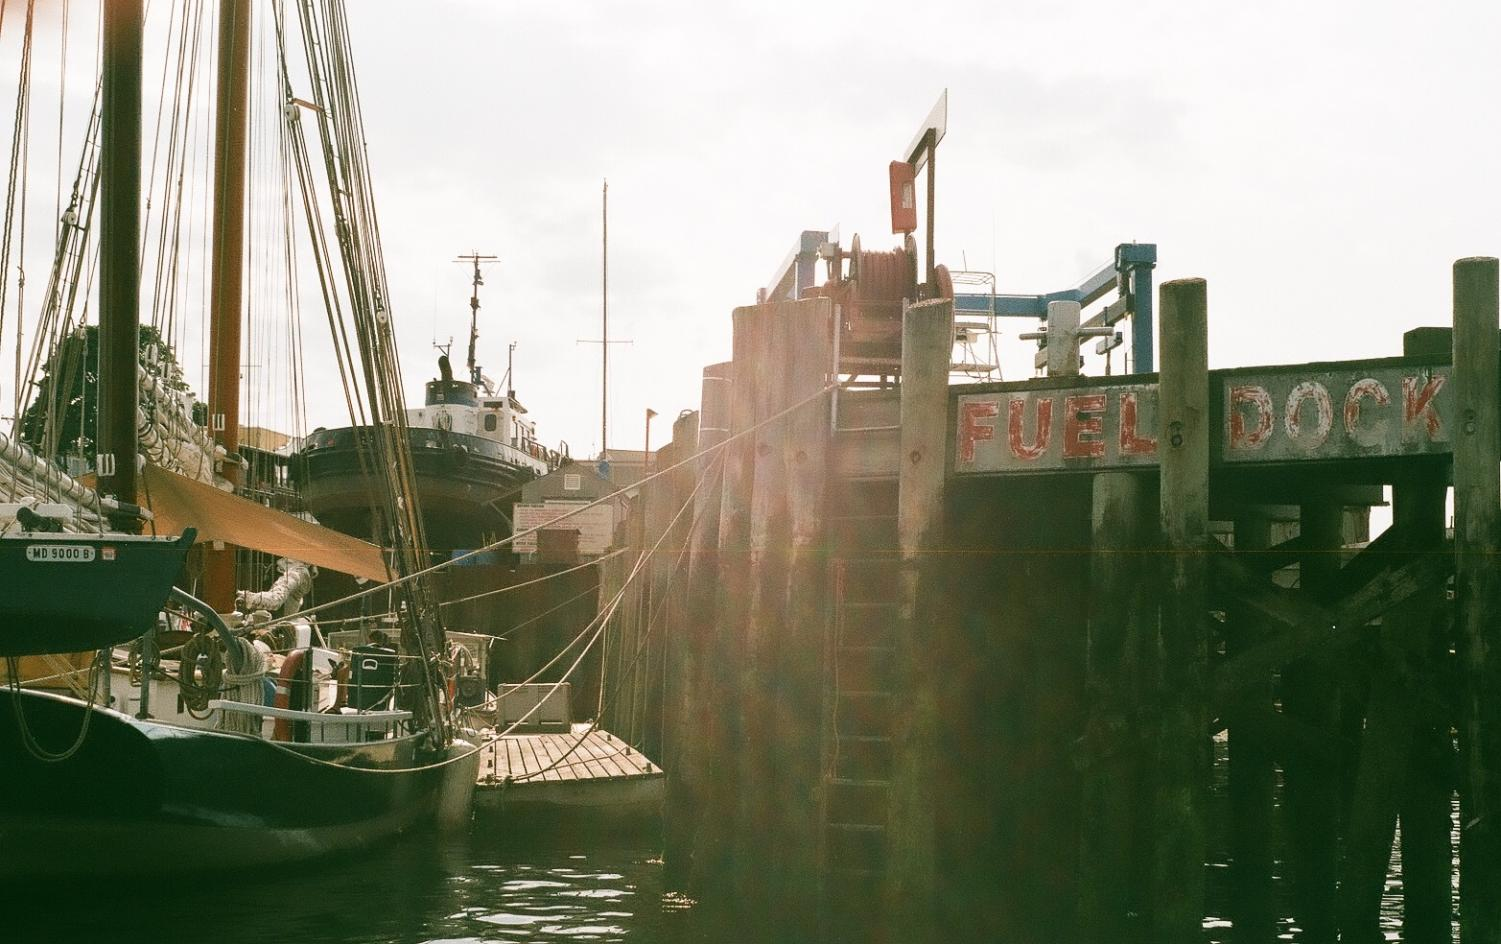 The fuel dock at Gloucester Marine Railways in Gloucester Harbor. Touchette cited this area as one of his favorite places to paint.